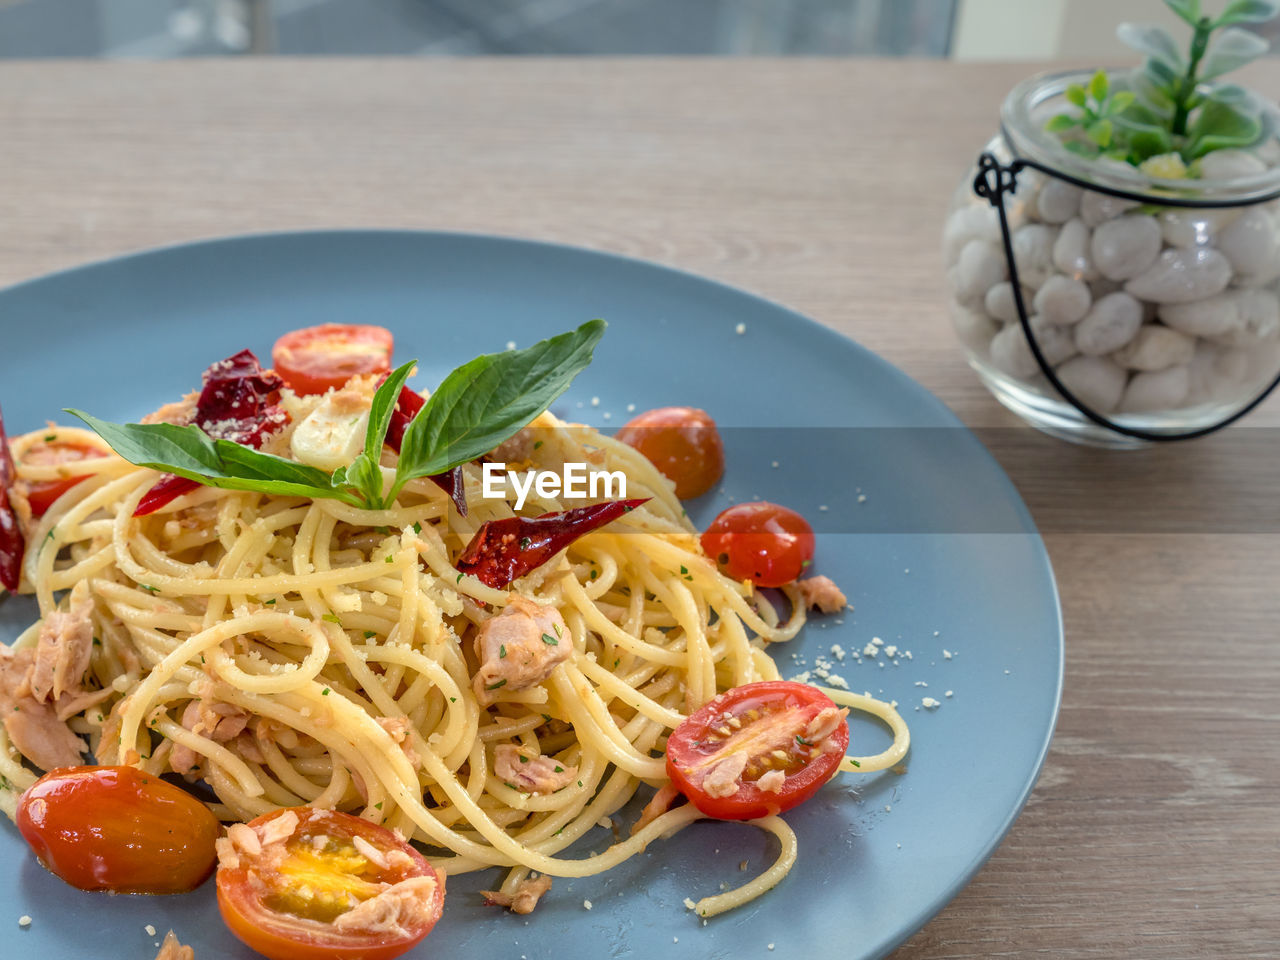 food and drink, food, italian food, pasta, freshness, plate, table, ready-to-eat, healthy eating, wellbeing, vegetable, still life, tomato, indoors, fruit, close-up, spaghetti, serving size, herb, no people, meal, garnish, crockery